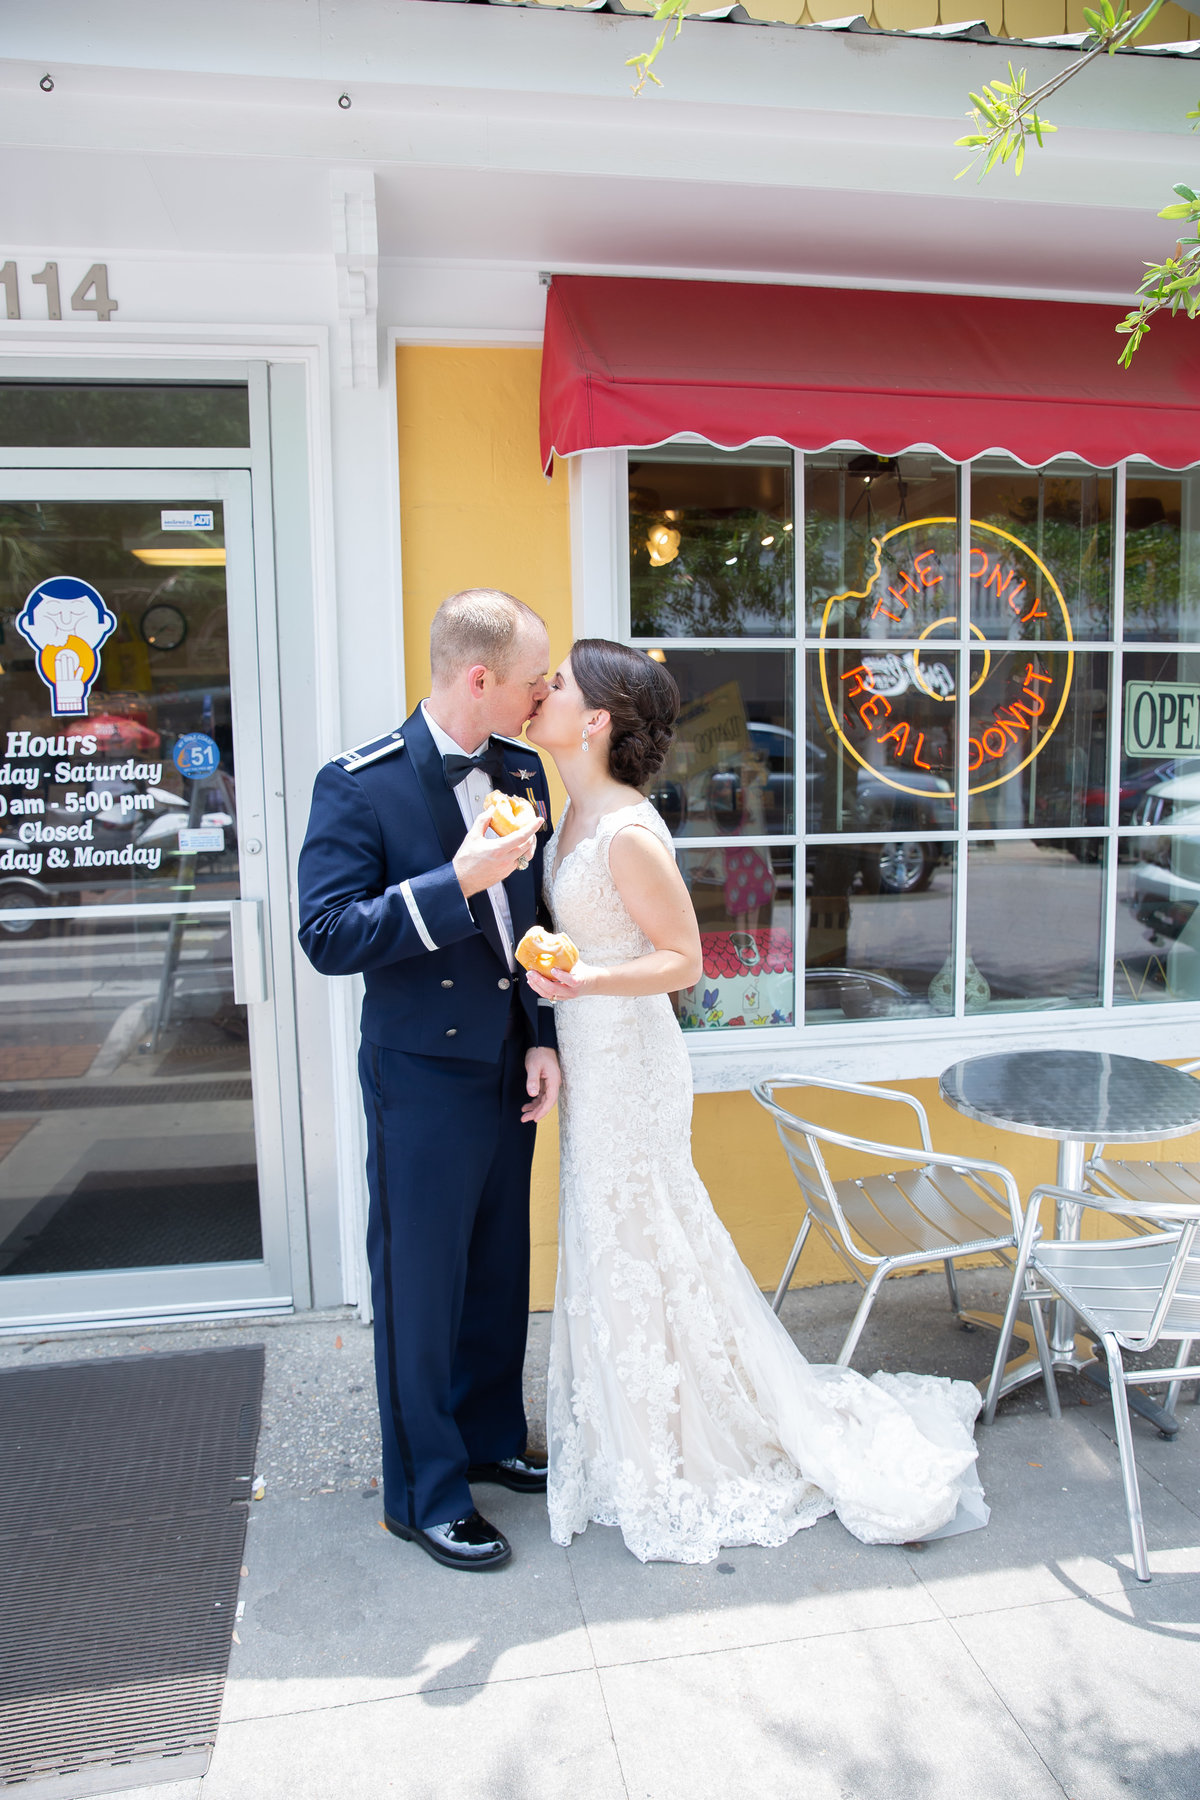 Bride and Groom with doughnut in front of Tatonut in dowtown Ocean Springs